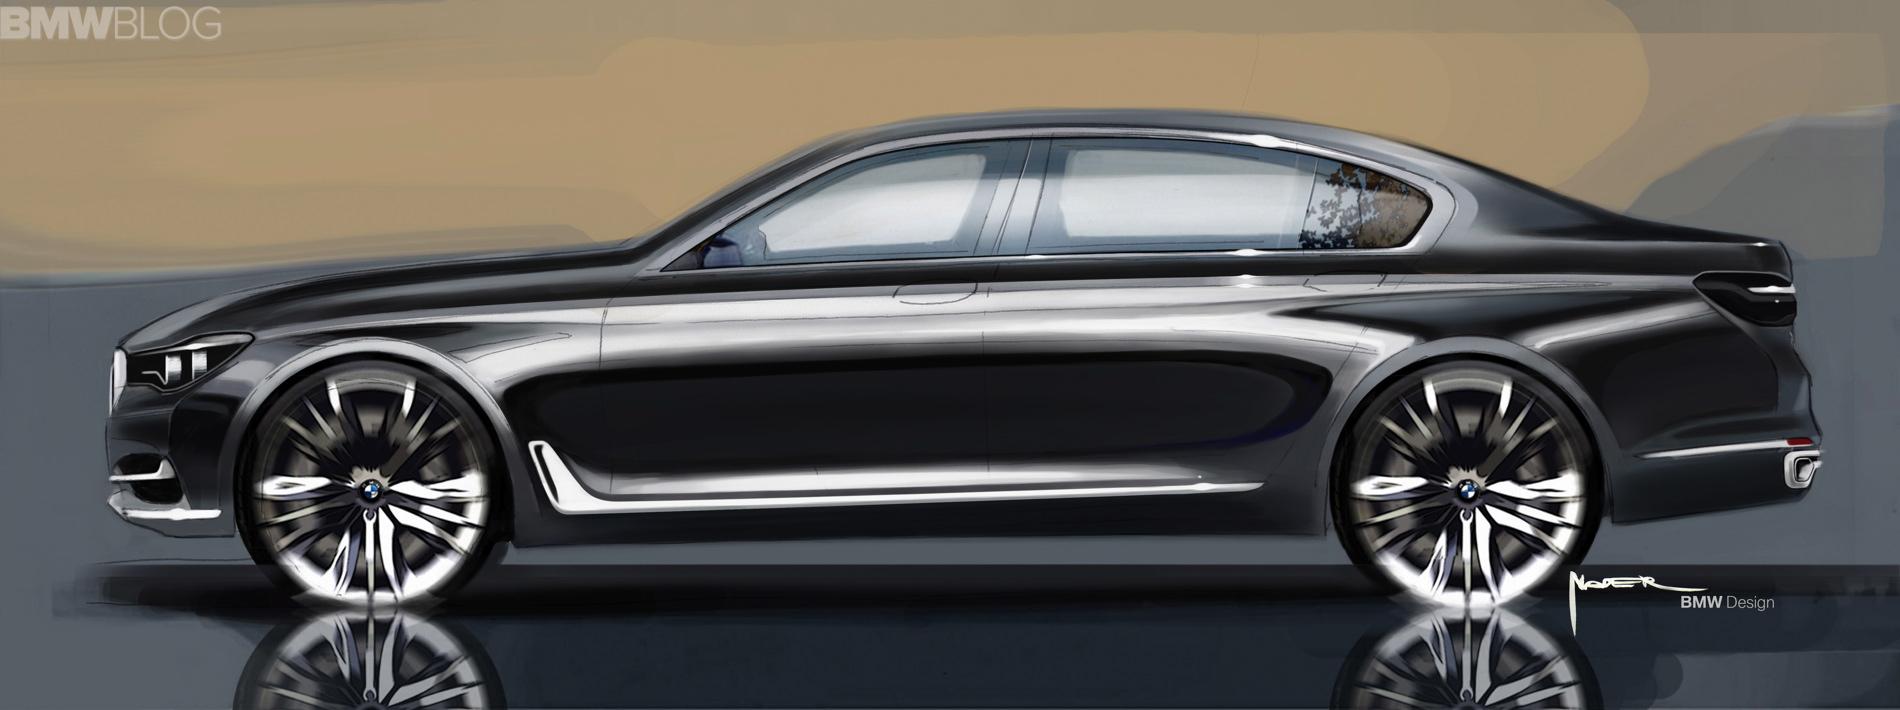 2016 bmw 7 series sketches images 1900x1200 08